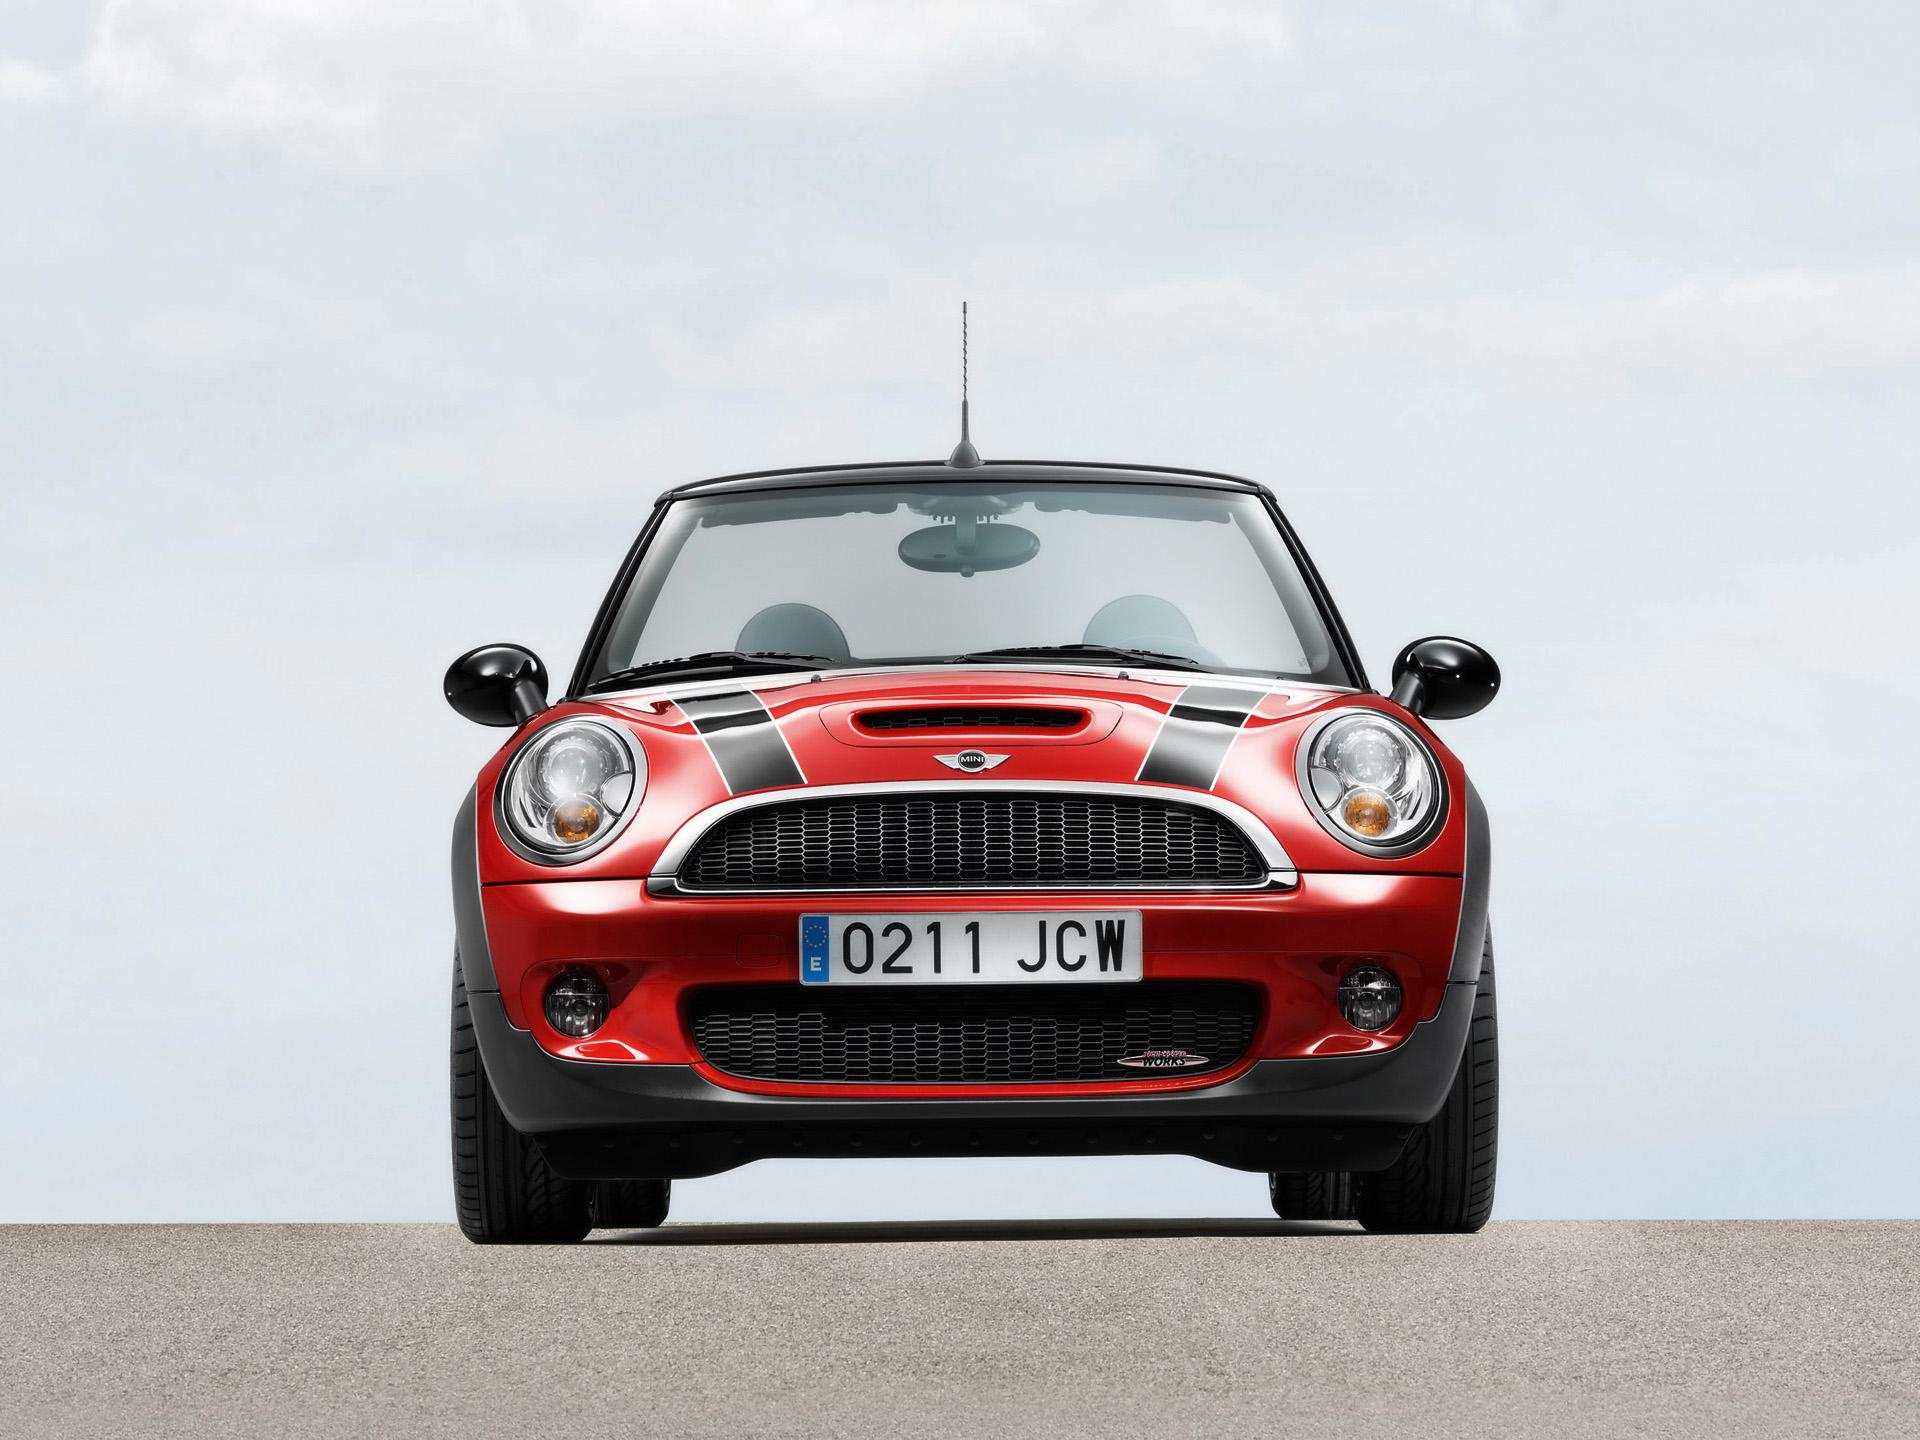 2009 mini cooper s mk ii jcw convertible technical and mechanical specifications. Black Bedroom Furniture Sets. Home Design Ideas